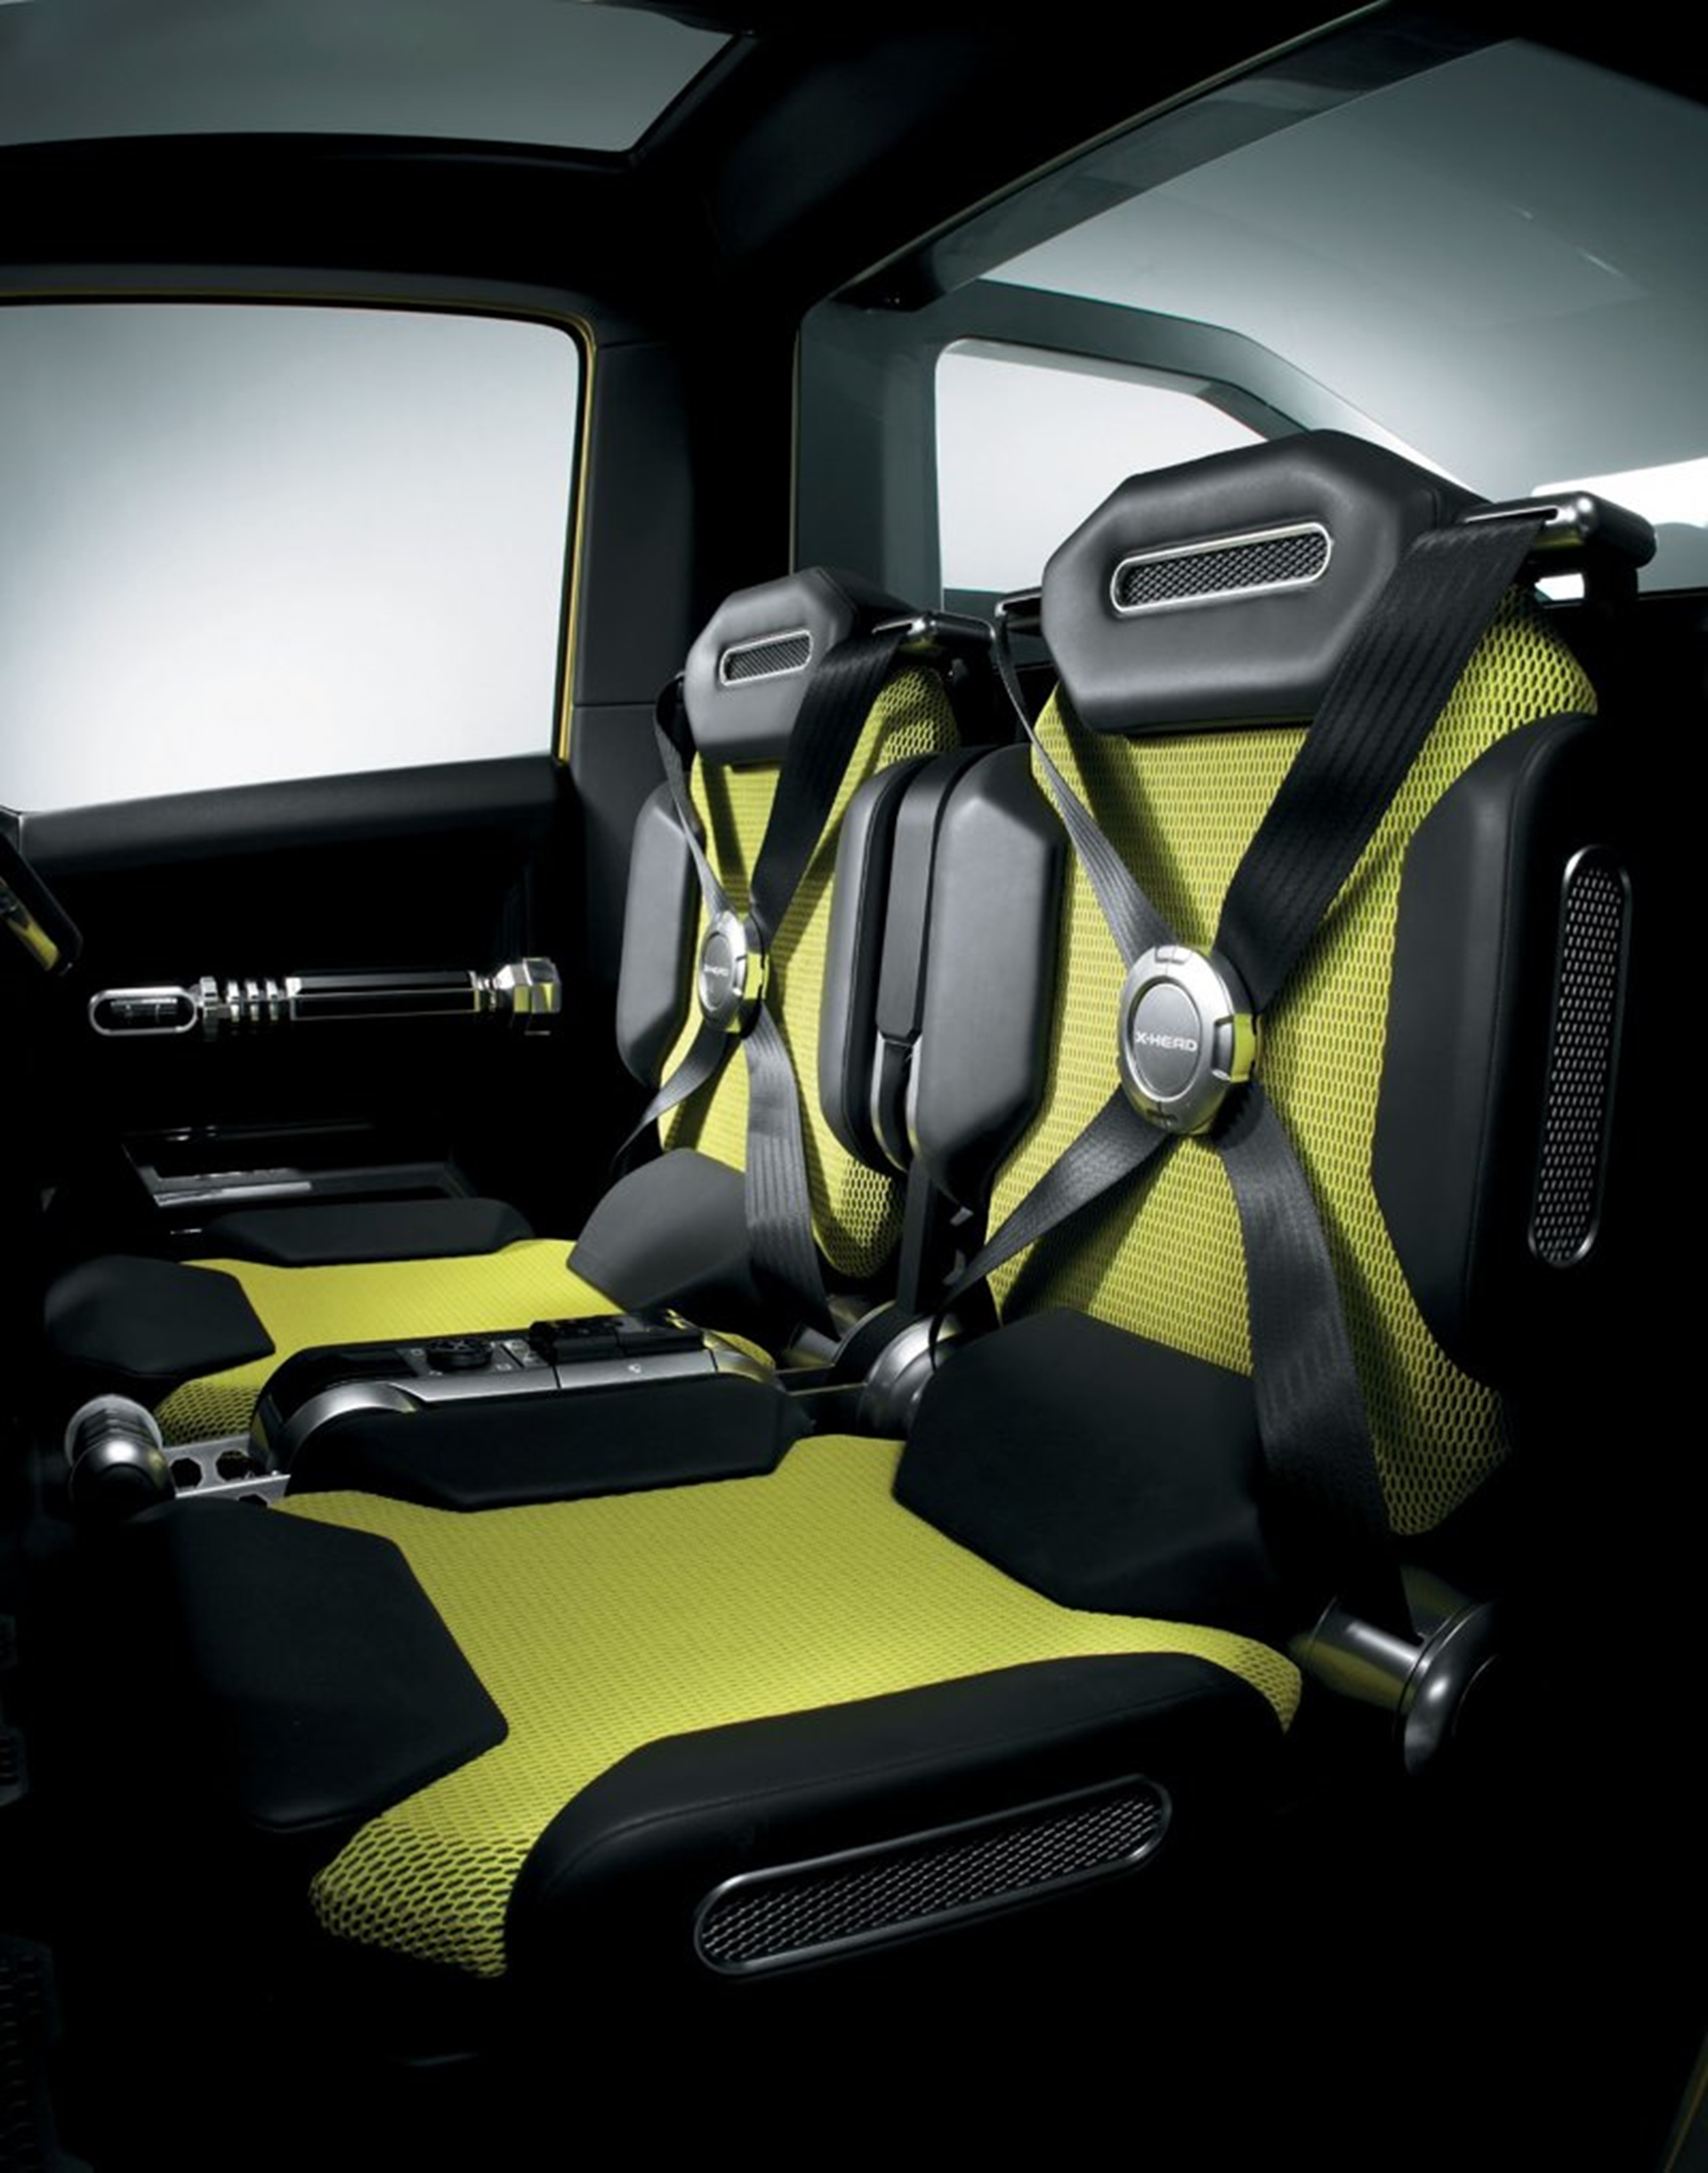 Suzuki X Head Concept Car Seats